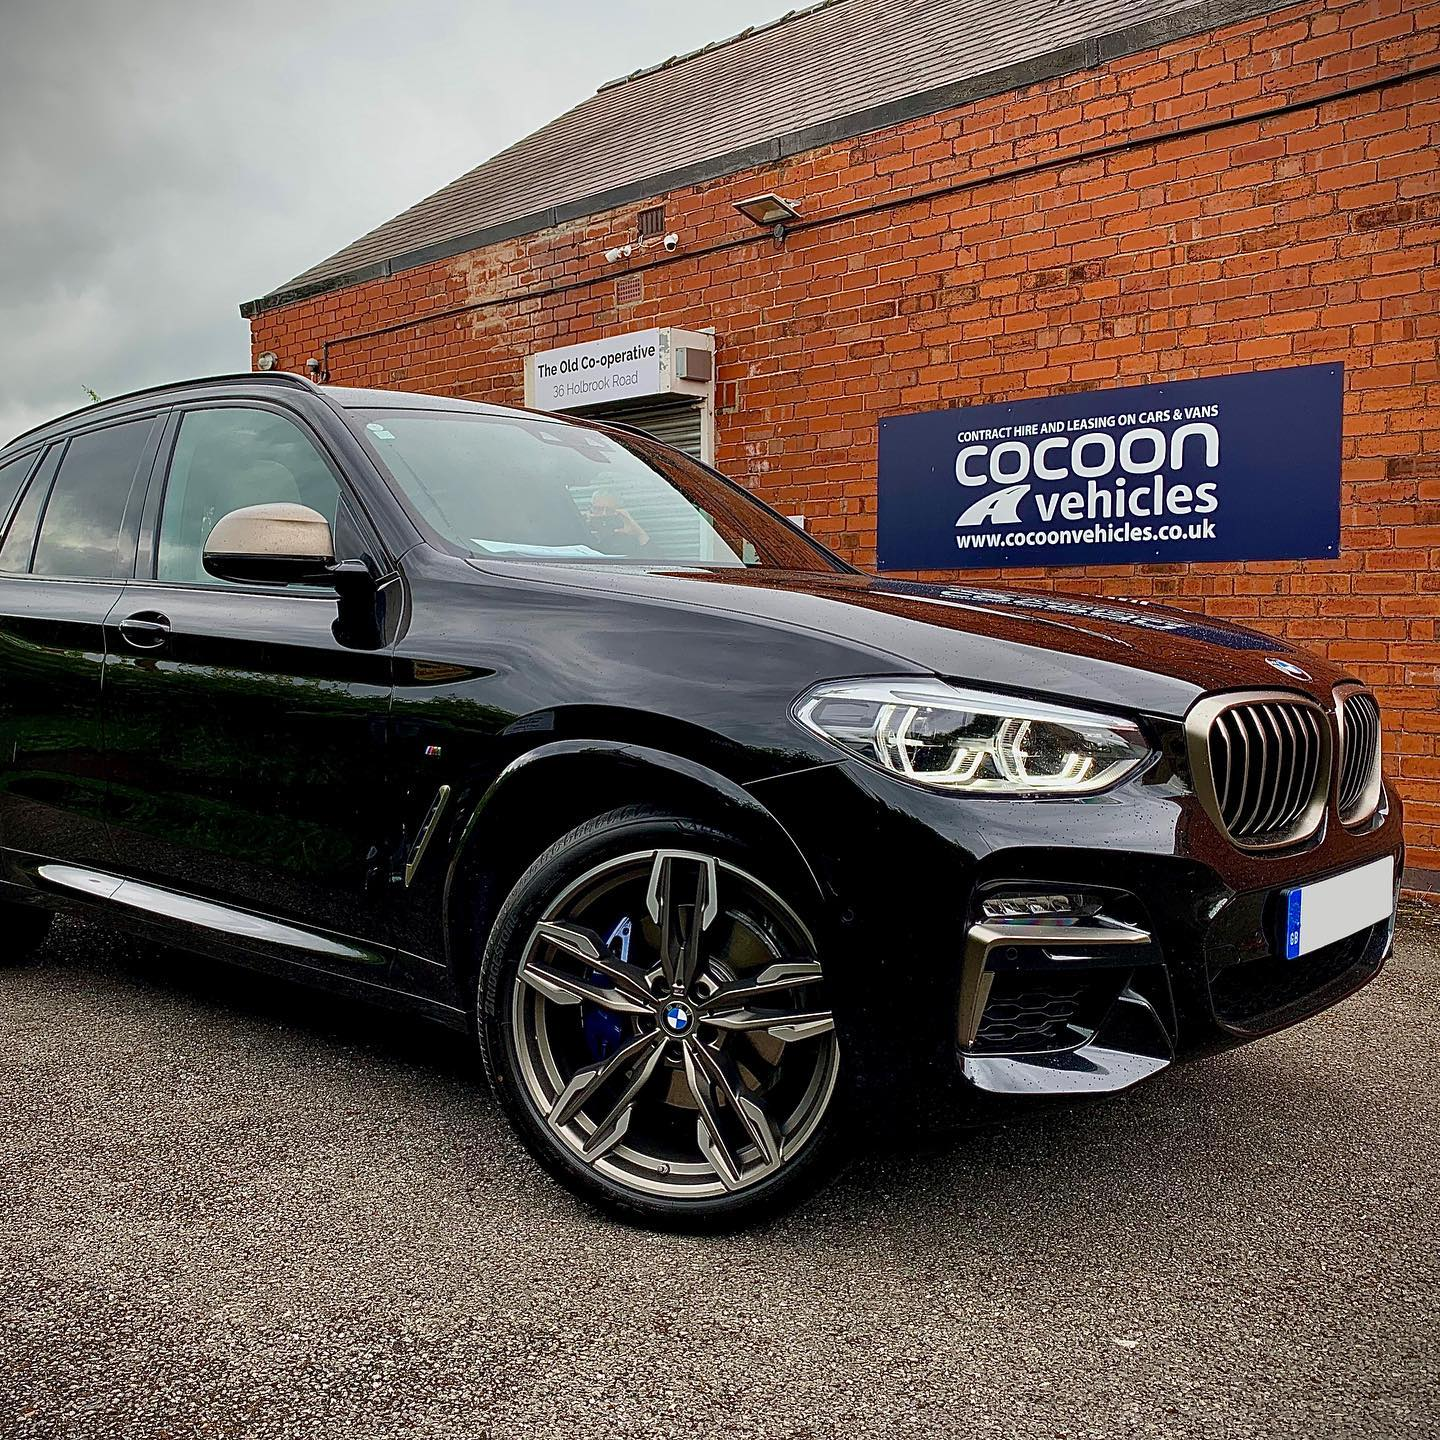 As promised... the photos of the BMW X3 M40i that we handed over on Friday to an existing customer.  We've already received feedback from the customer who loves it already!